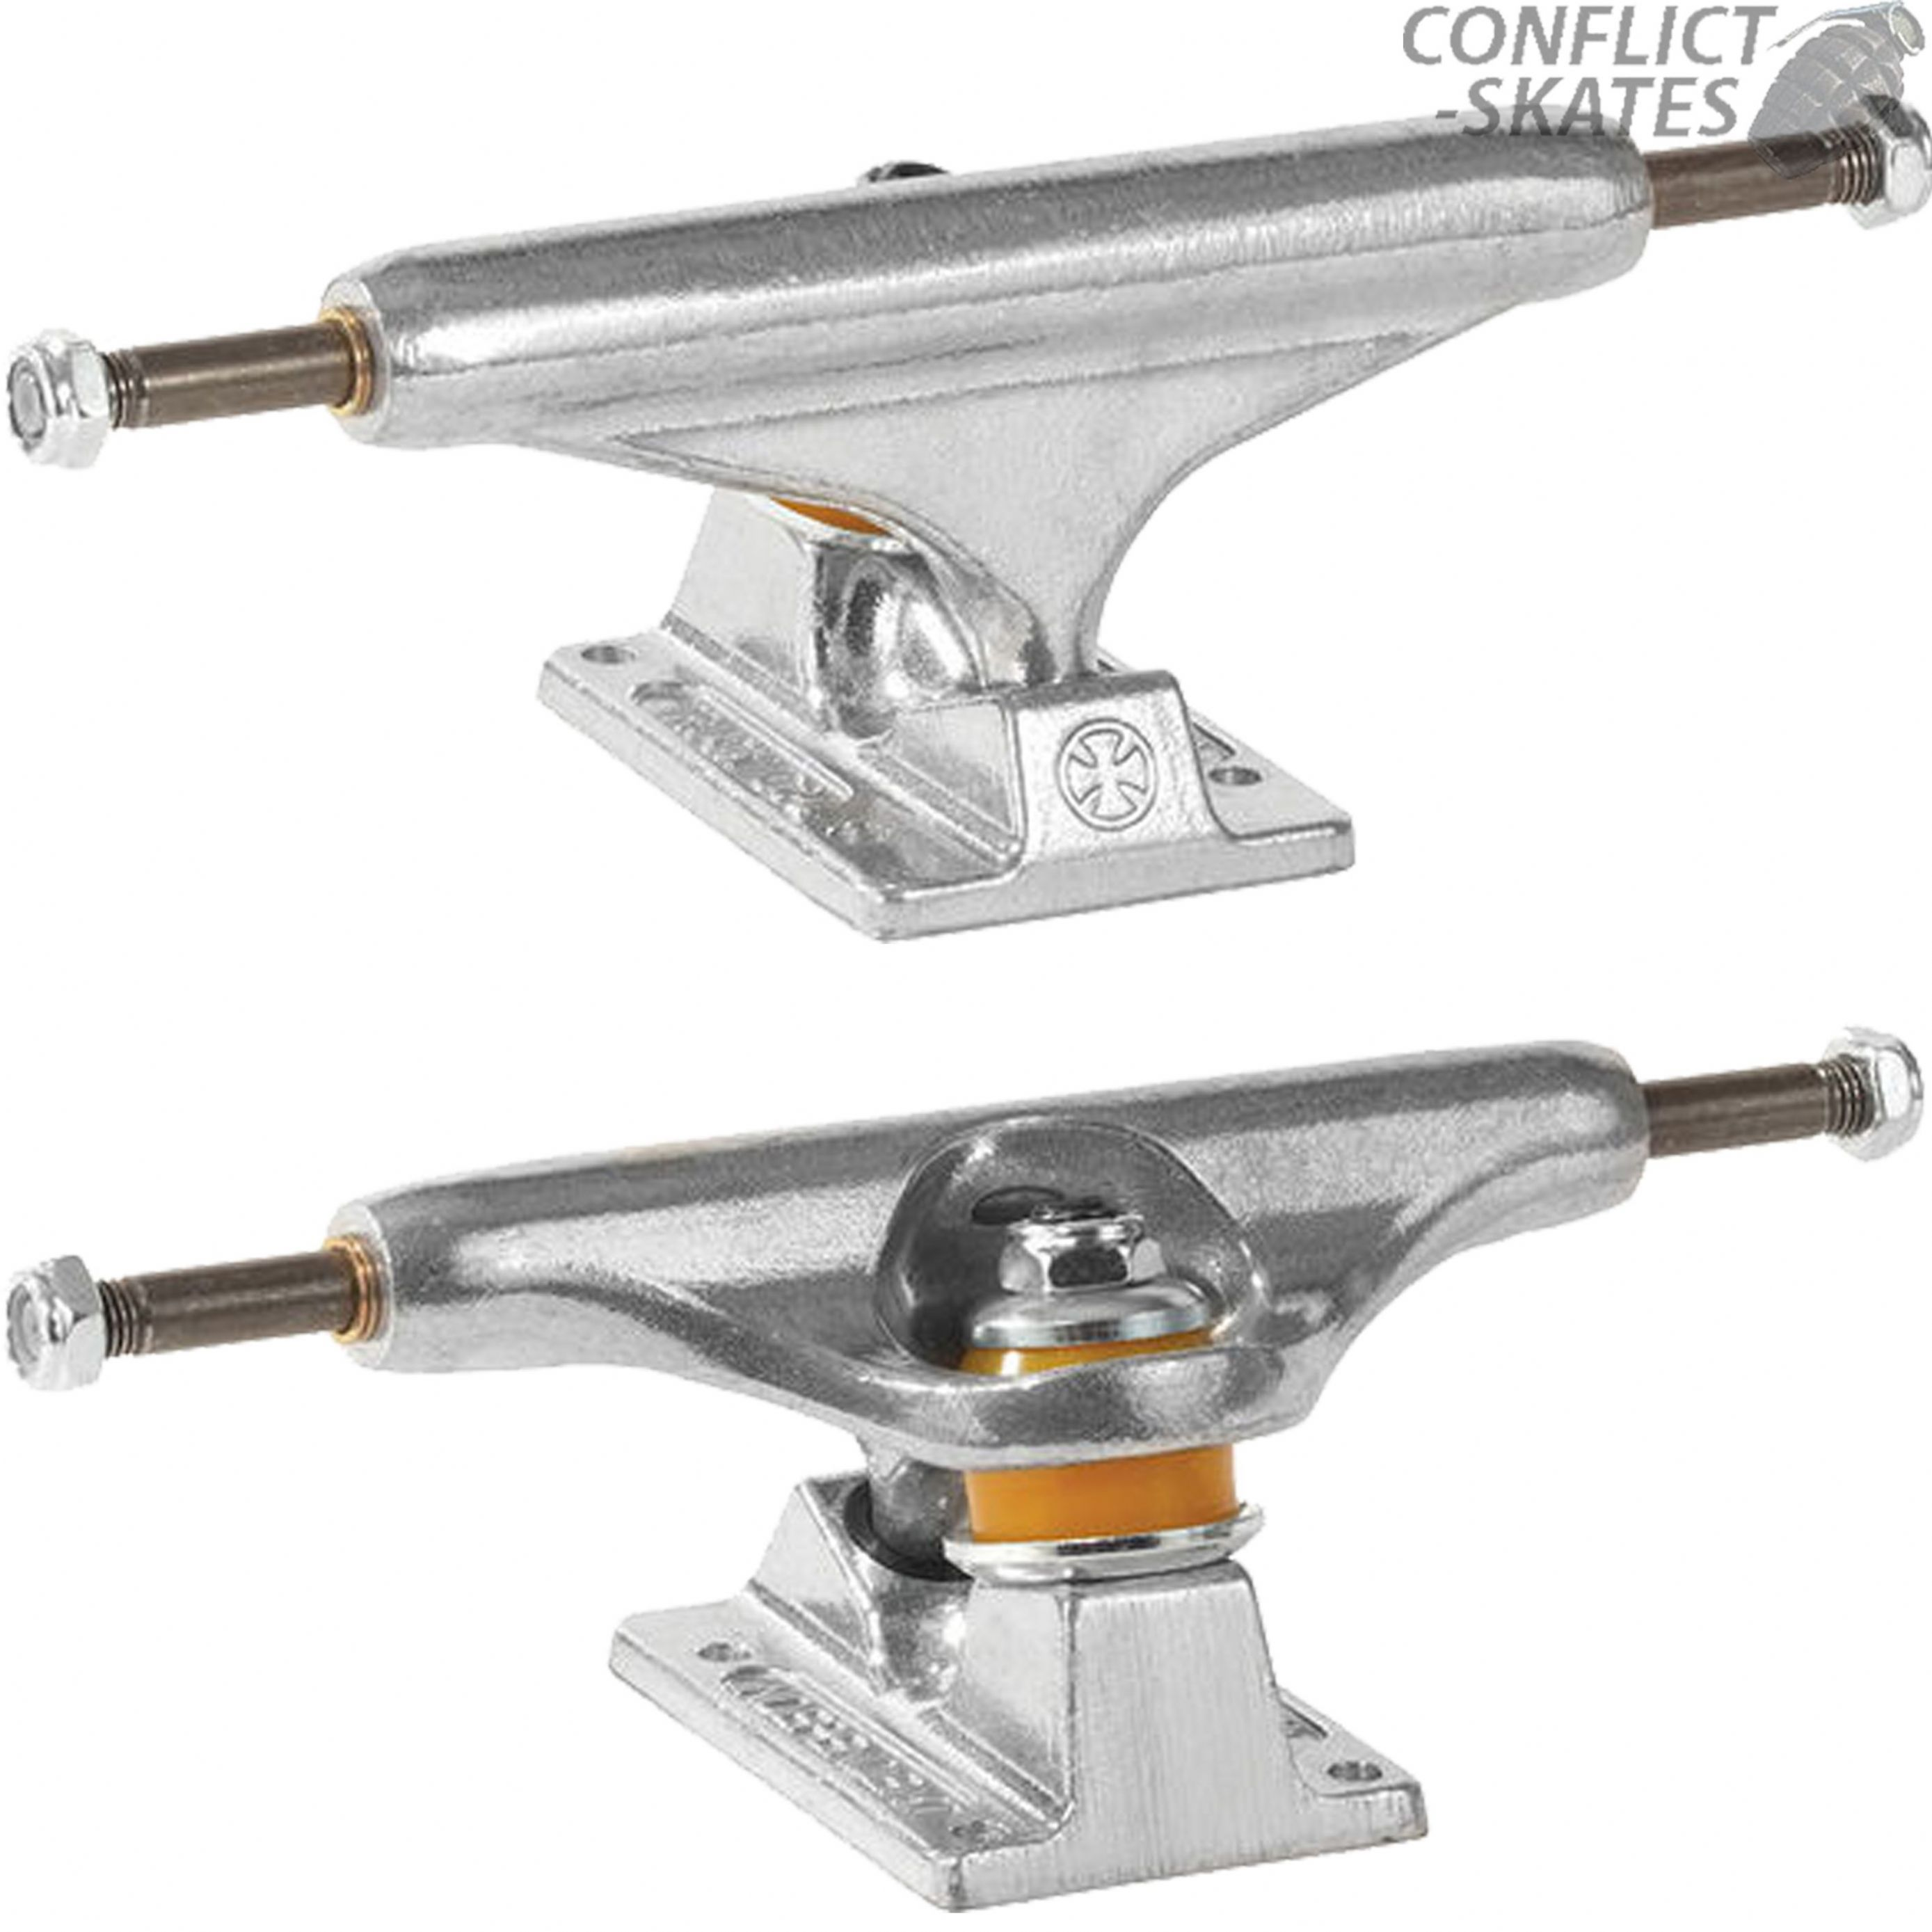 INDEPENDENT 139 Stage 11 Raw Skateboard Trucks Polished 8.0 Park Street Indy cc4bb46d7